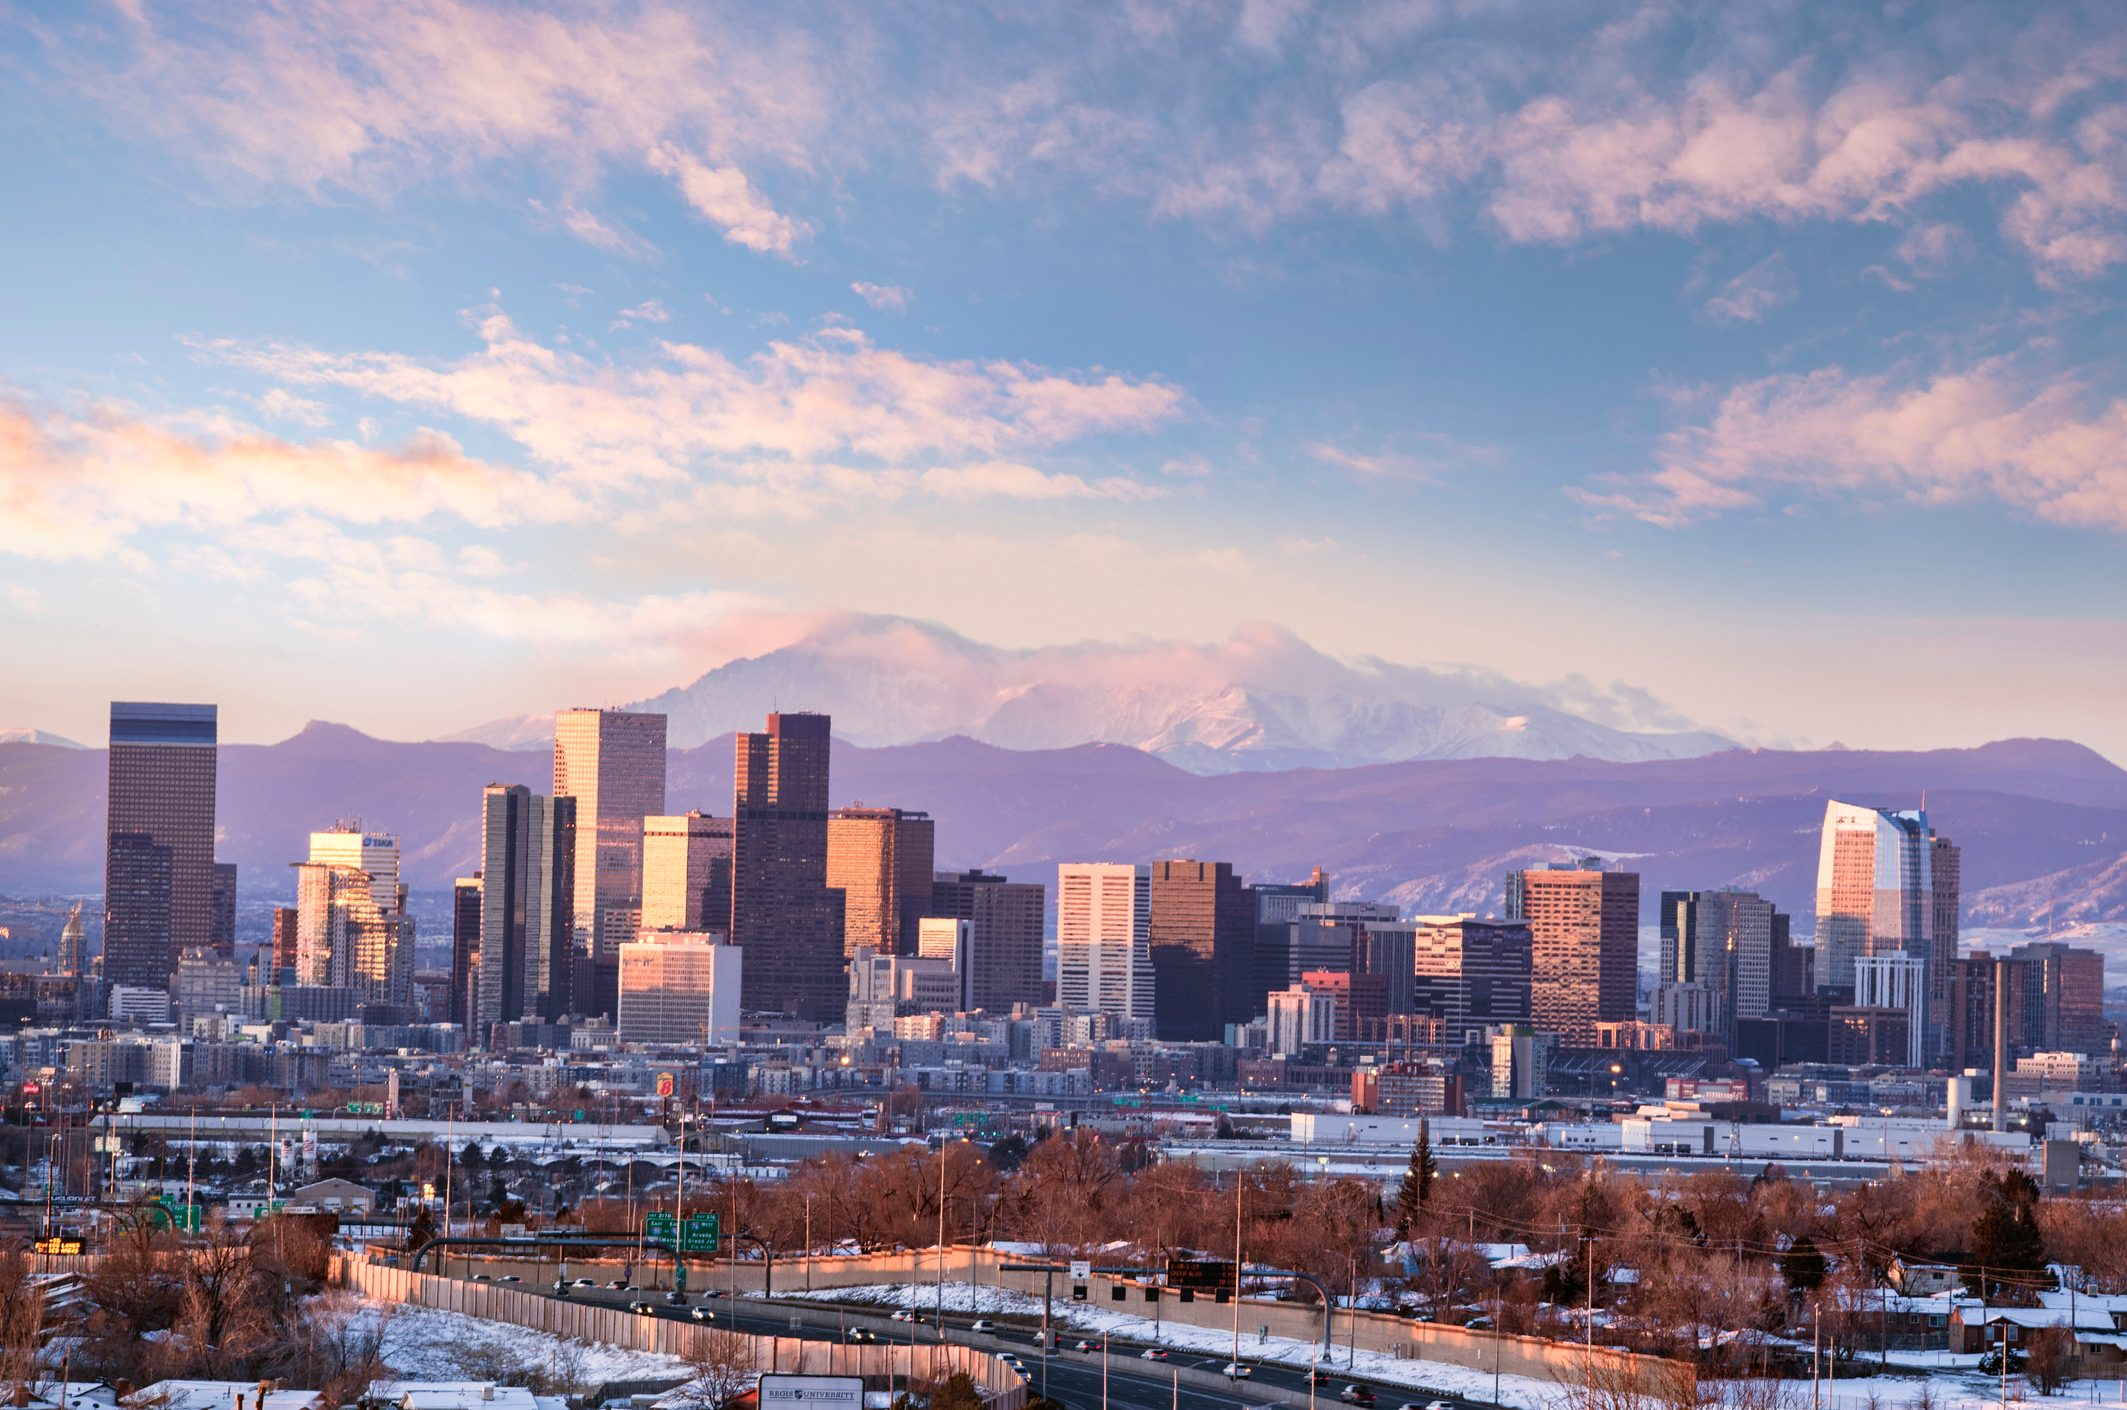 denver cityscape with moutains in the background